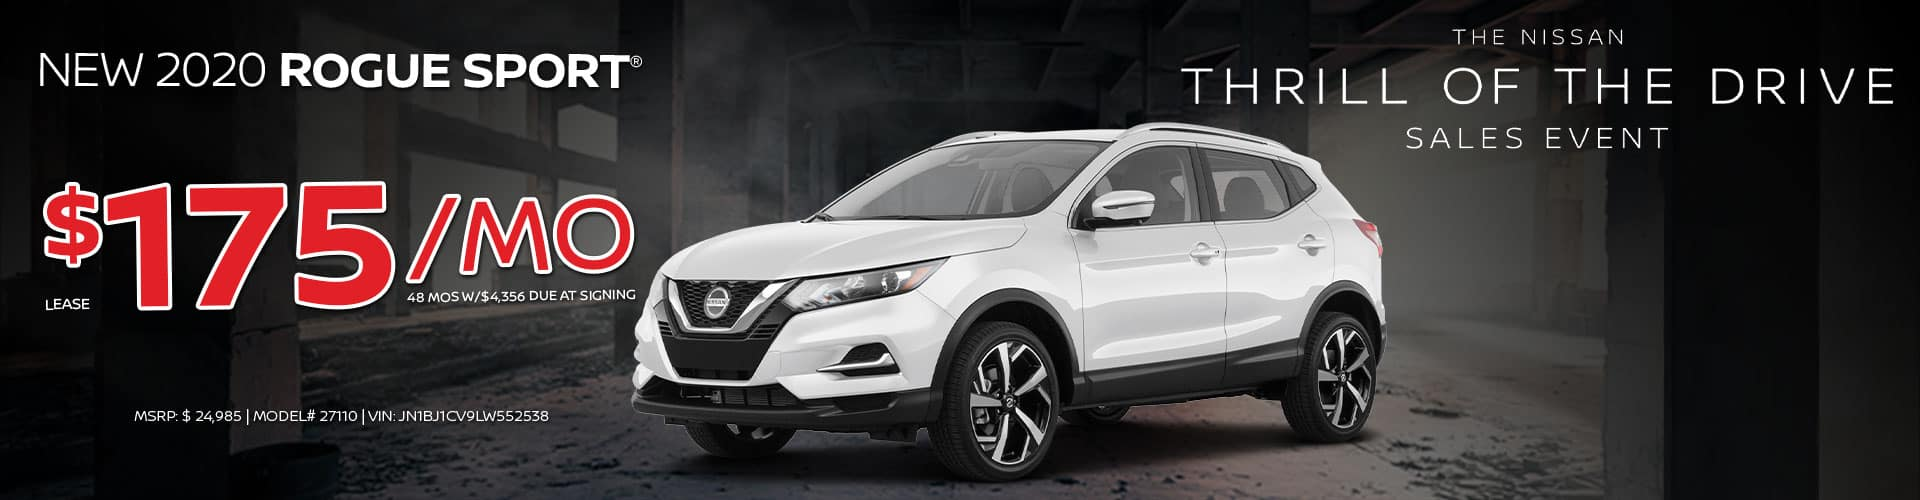 20210215_2021-Nissan-RogueSport-Lease